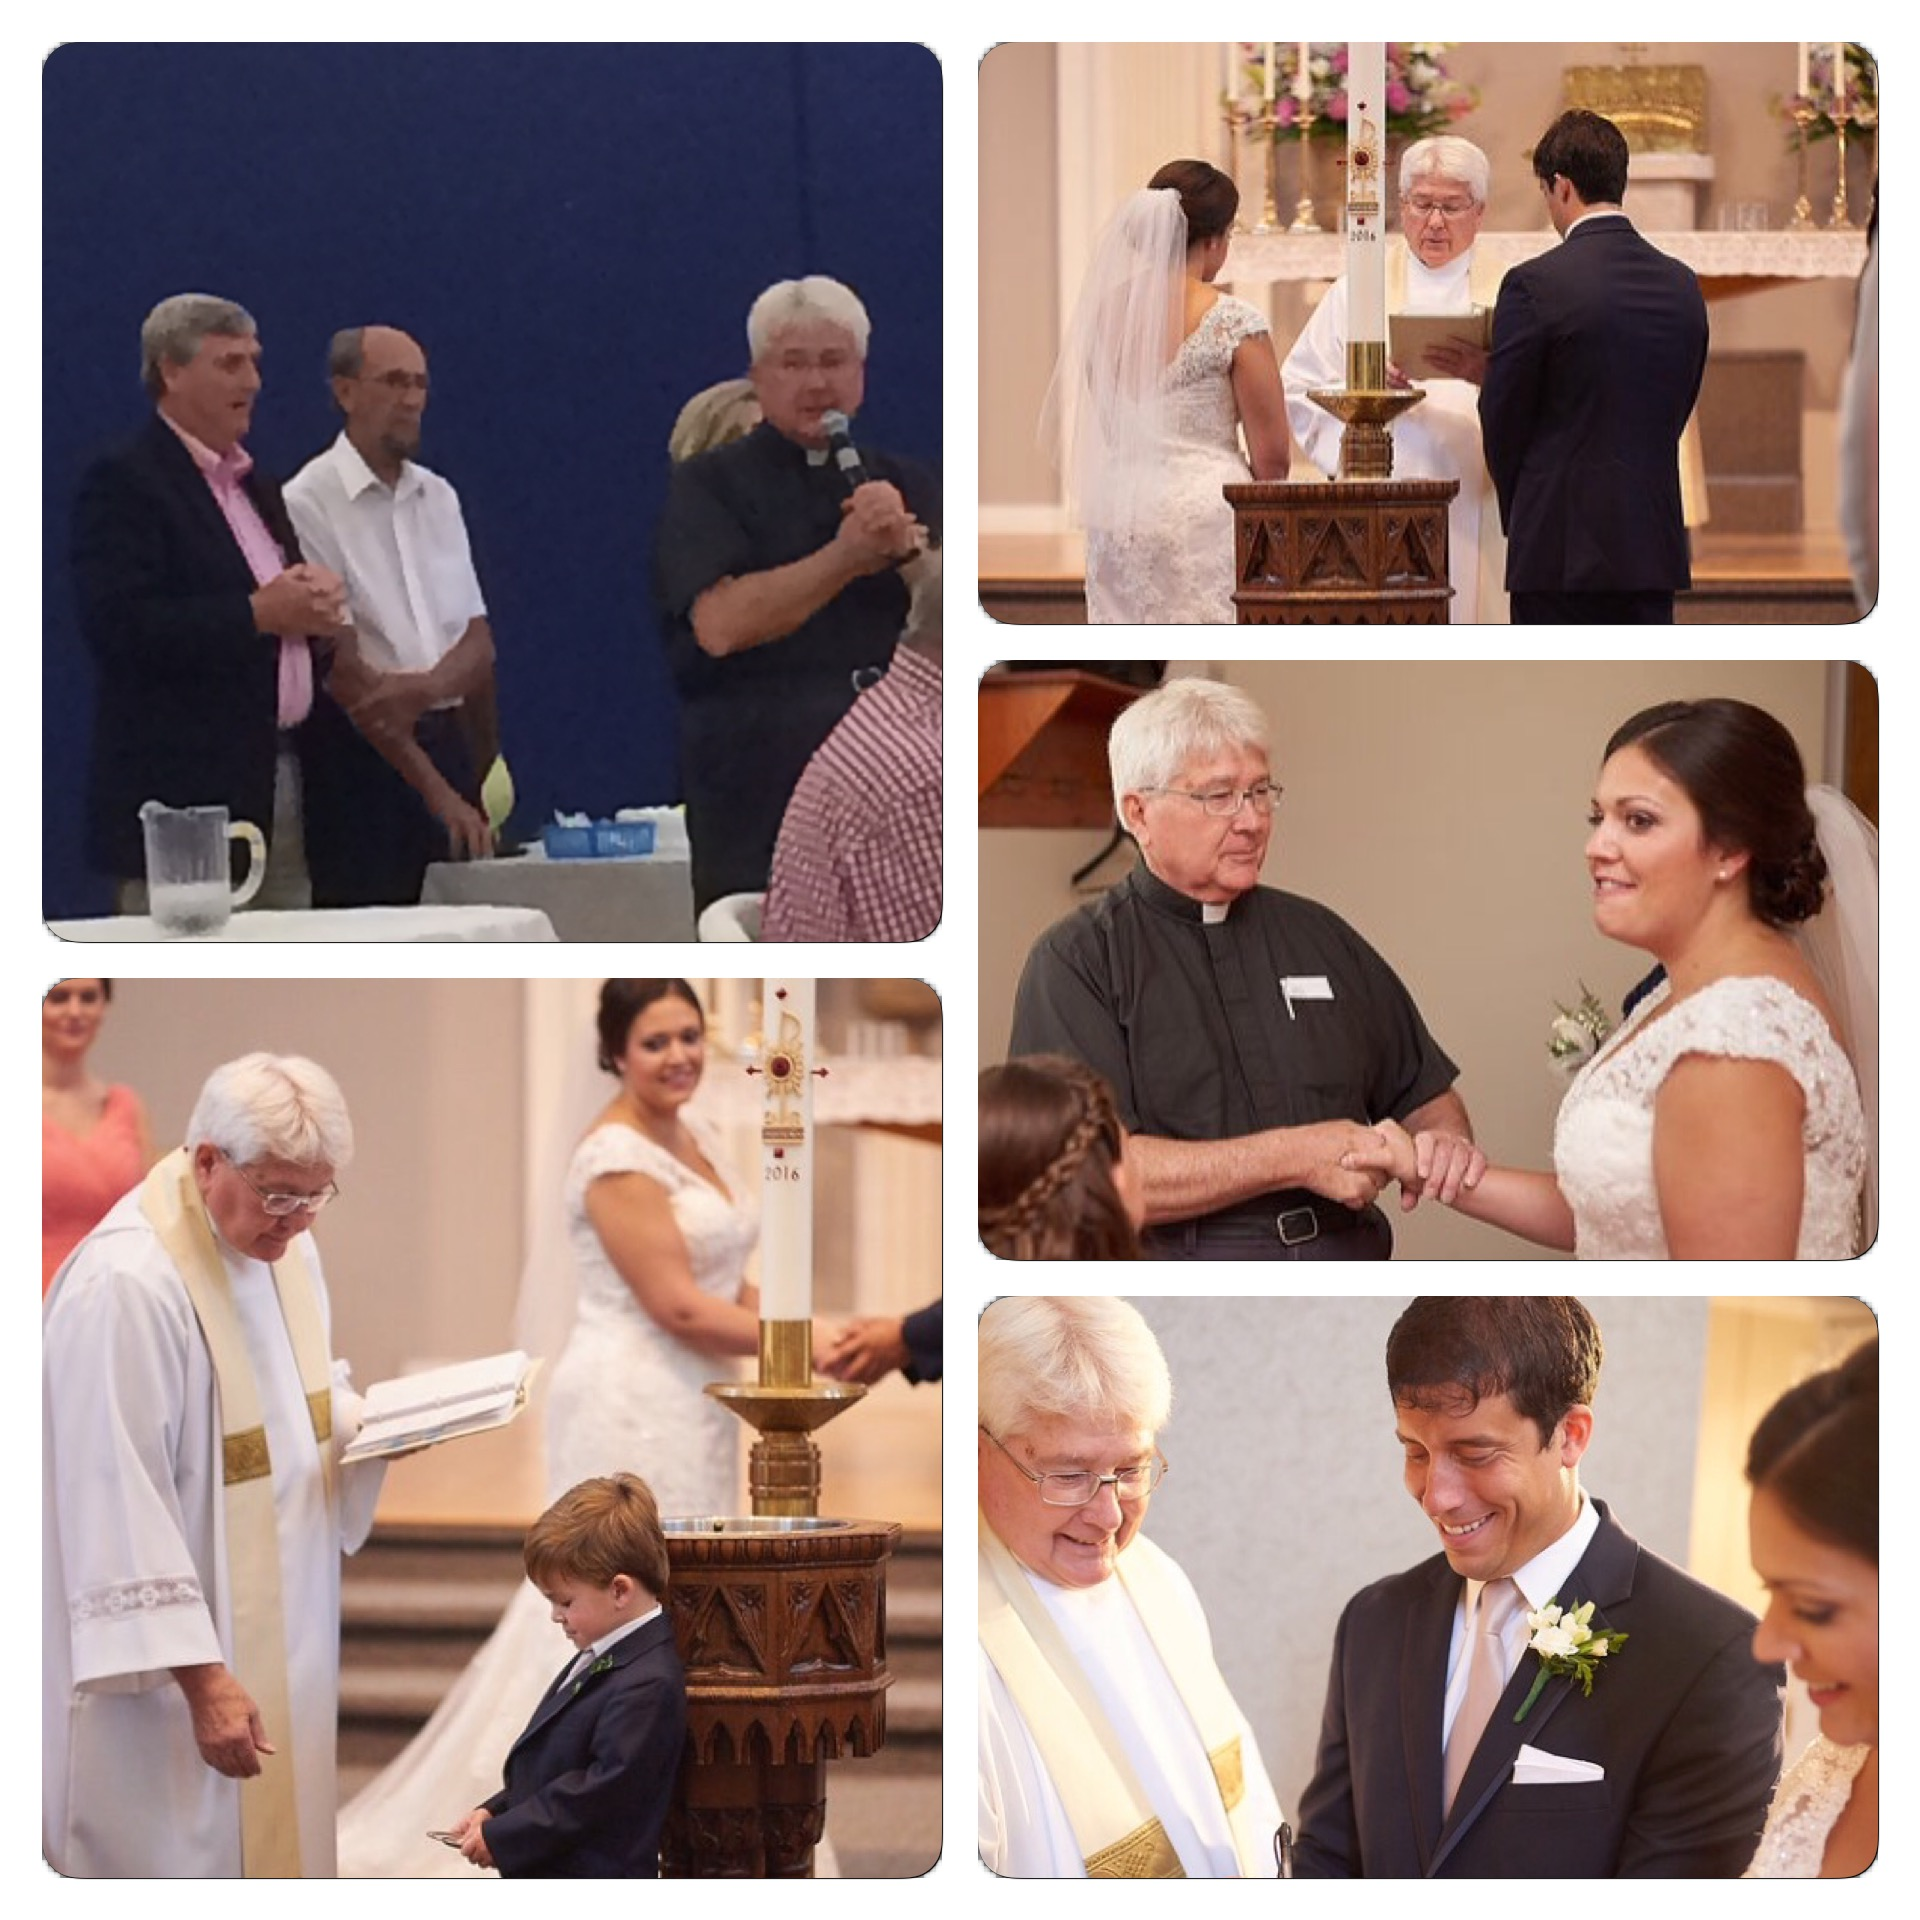 The photo in the upper left hand corner is of Fr. LeBlanc giving his speech at his 20th anniversary of ordination reception that was held last night. The other photos are from our wedding on June 11, 2016.